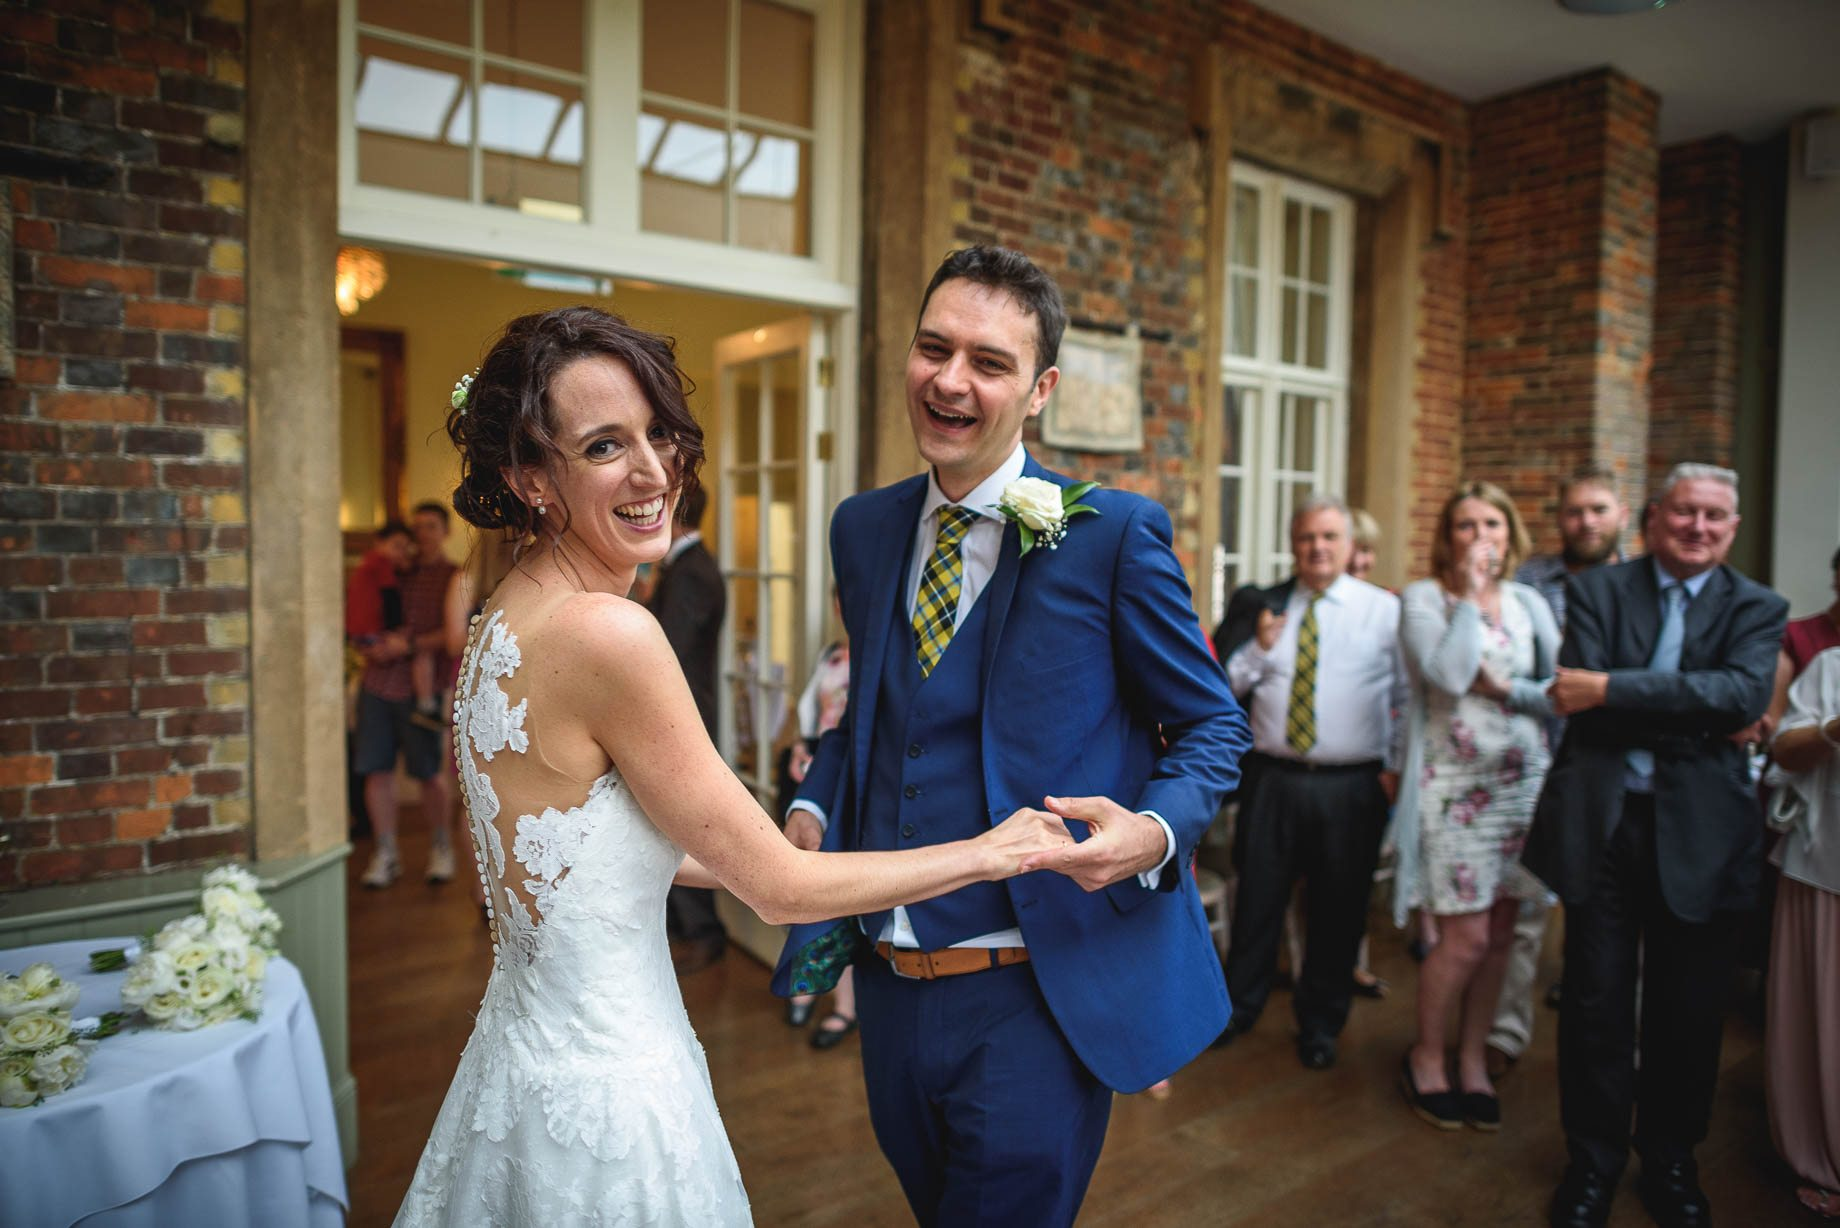 Hertfordshire wedding photography - Sarah and Stephen by Guy Collier Photography (157 of 161)